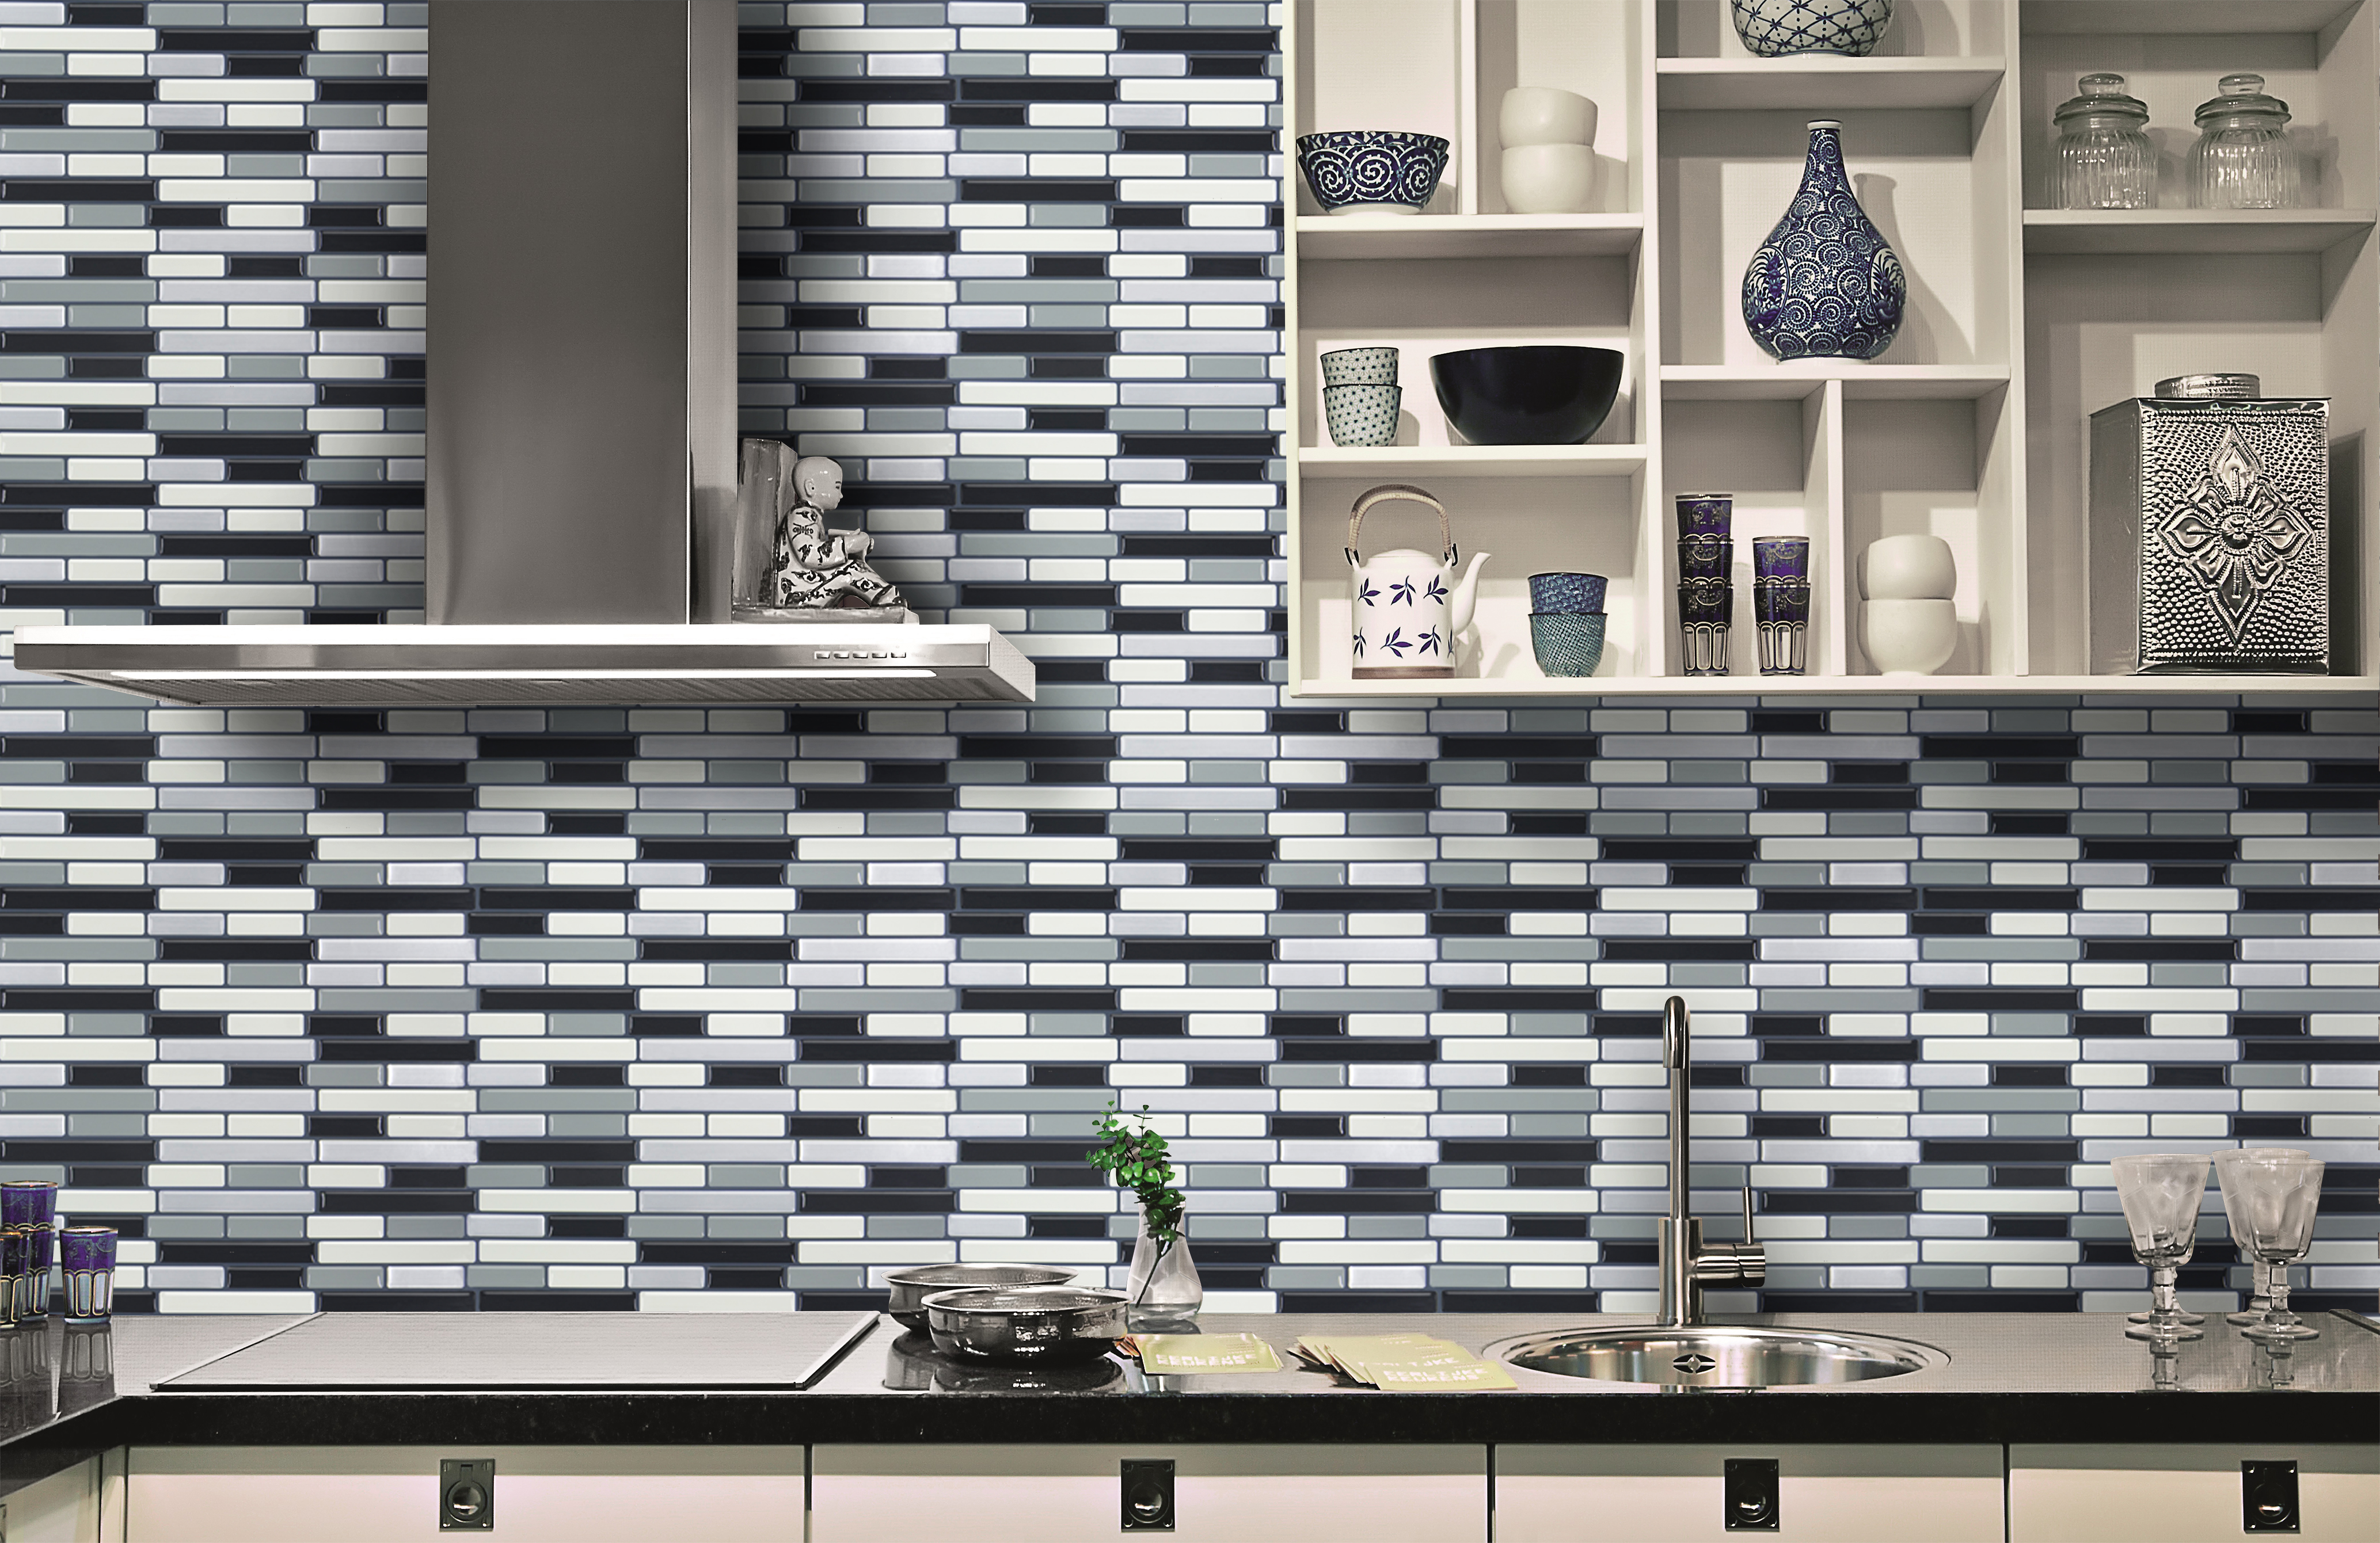 Tile Adhesive Over Painted Wall Peel And Stick Tile Kitchen Backsplash Sticker Gray Brick 250 250mm Sheet Wall Stickers Aliexpress